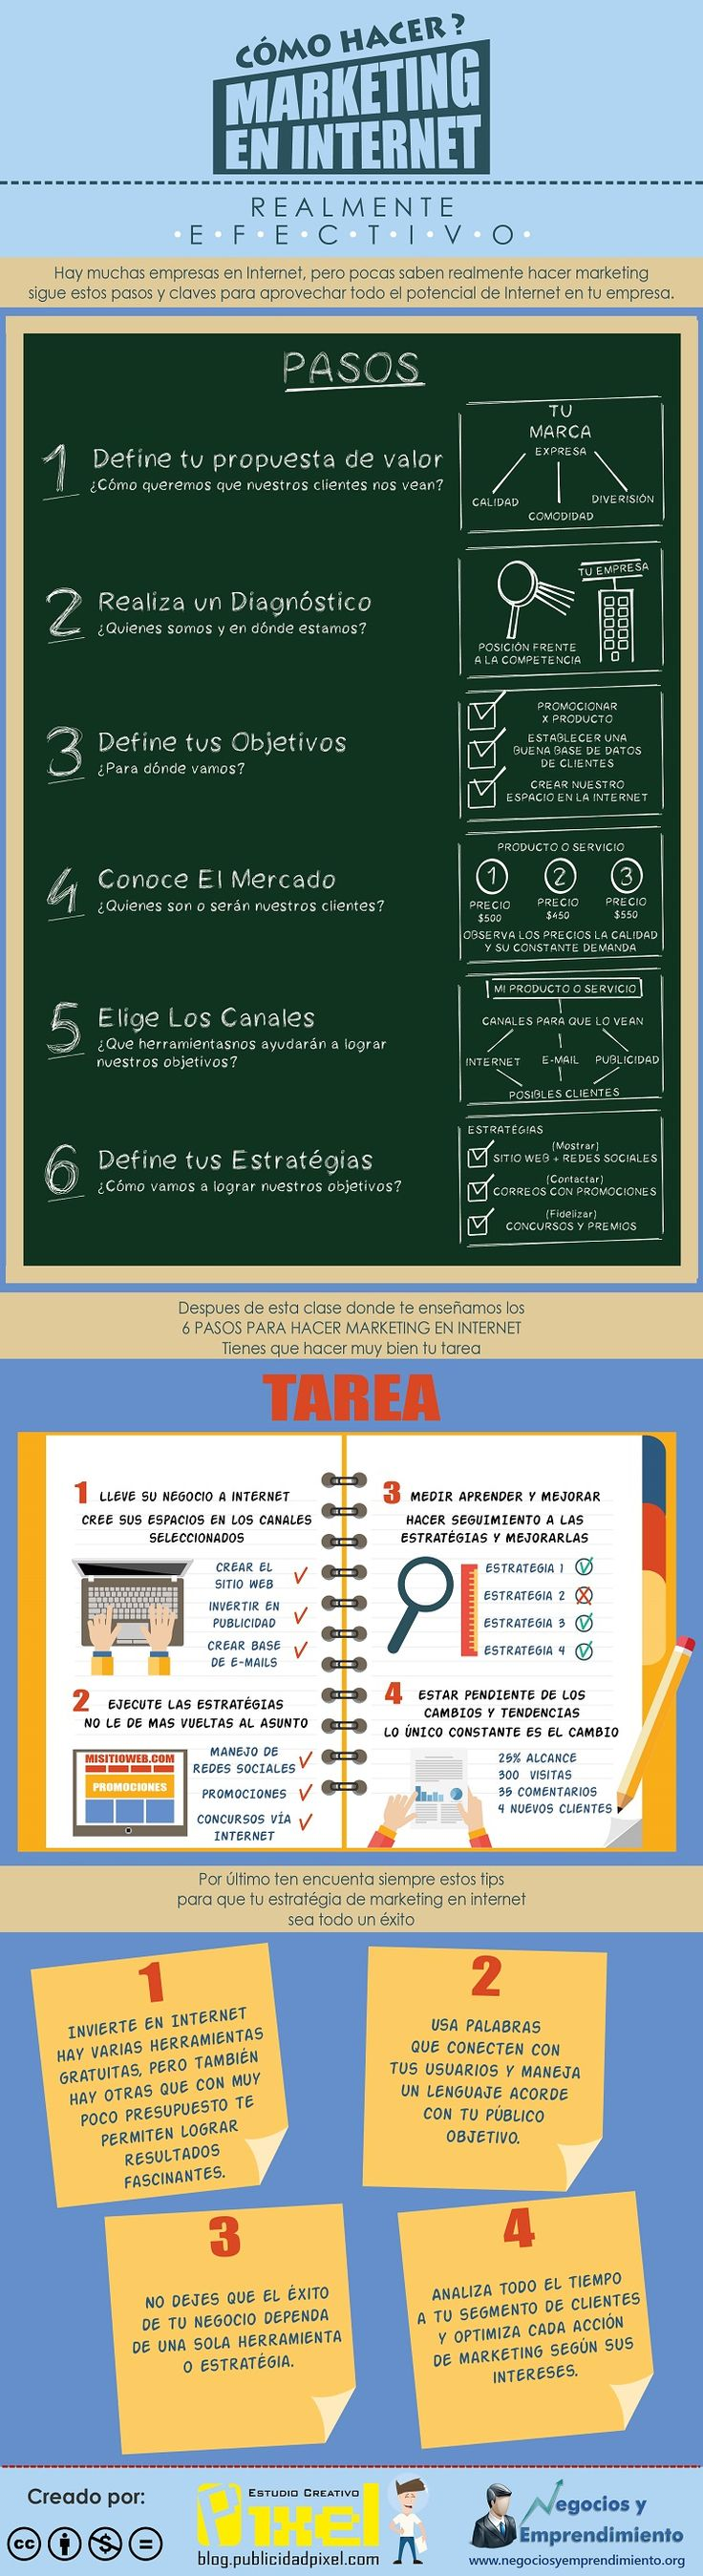 Cómo hacer marketing en Internet realmente efectivo #infografia #infographic #marketing